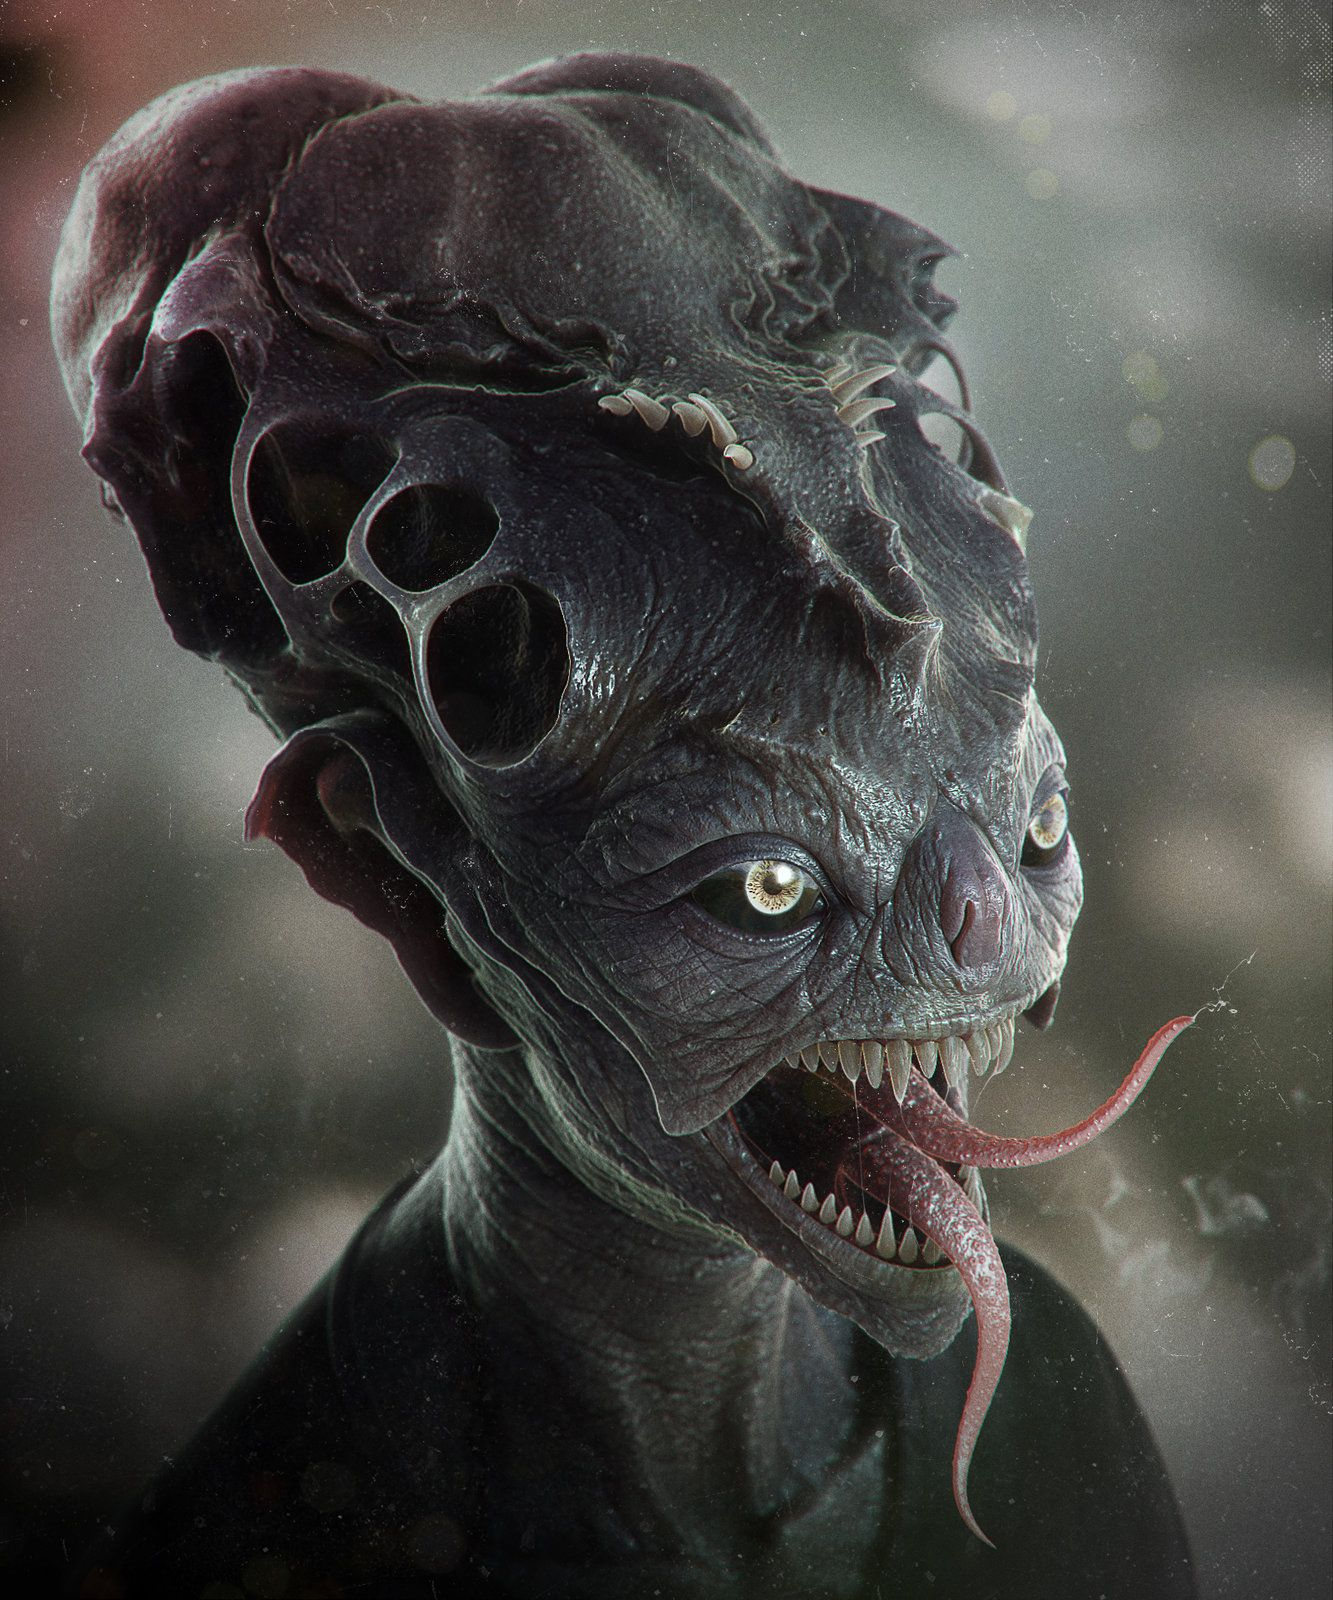 Alien, Ivan Mityaev on ArtStation at http://www.artstation.com/artwork/alien-8623b96e-b87d-4f91-9248-0d1e97e515f4